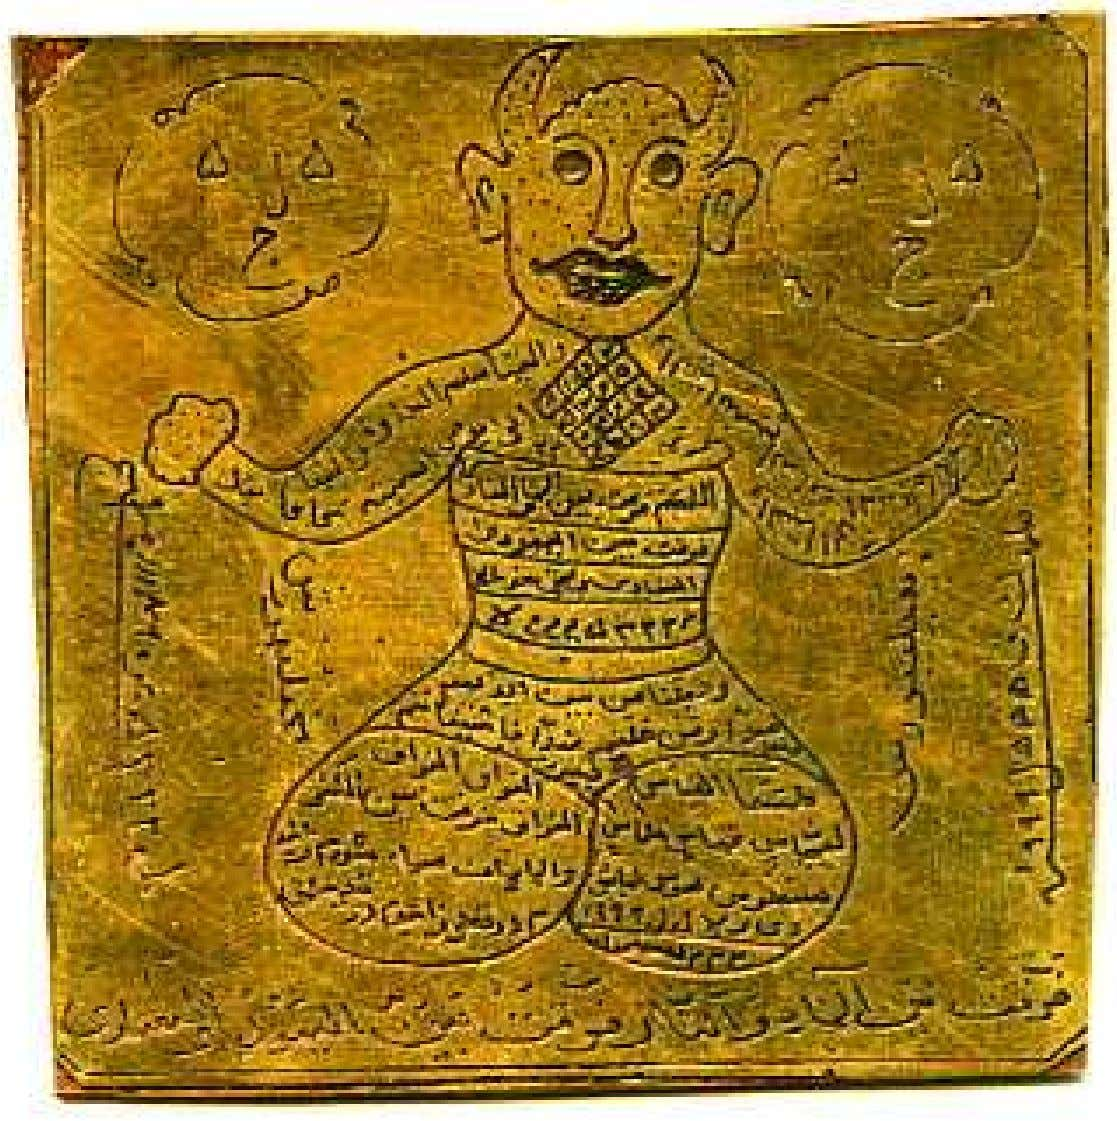 'DIVS' INHABIT CHARMS The iranian talismanology is composite, as this merges advanced numerology, zodiac, judaicca,